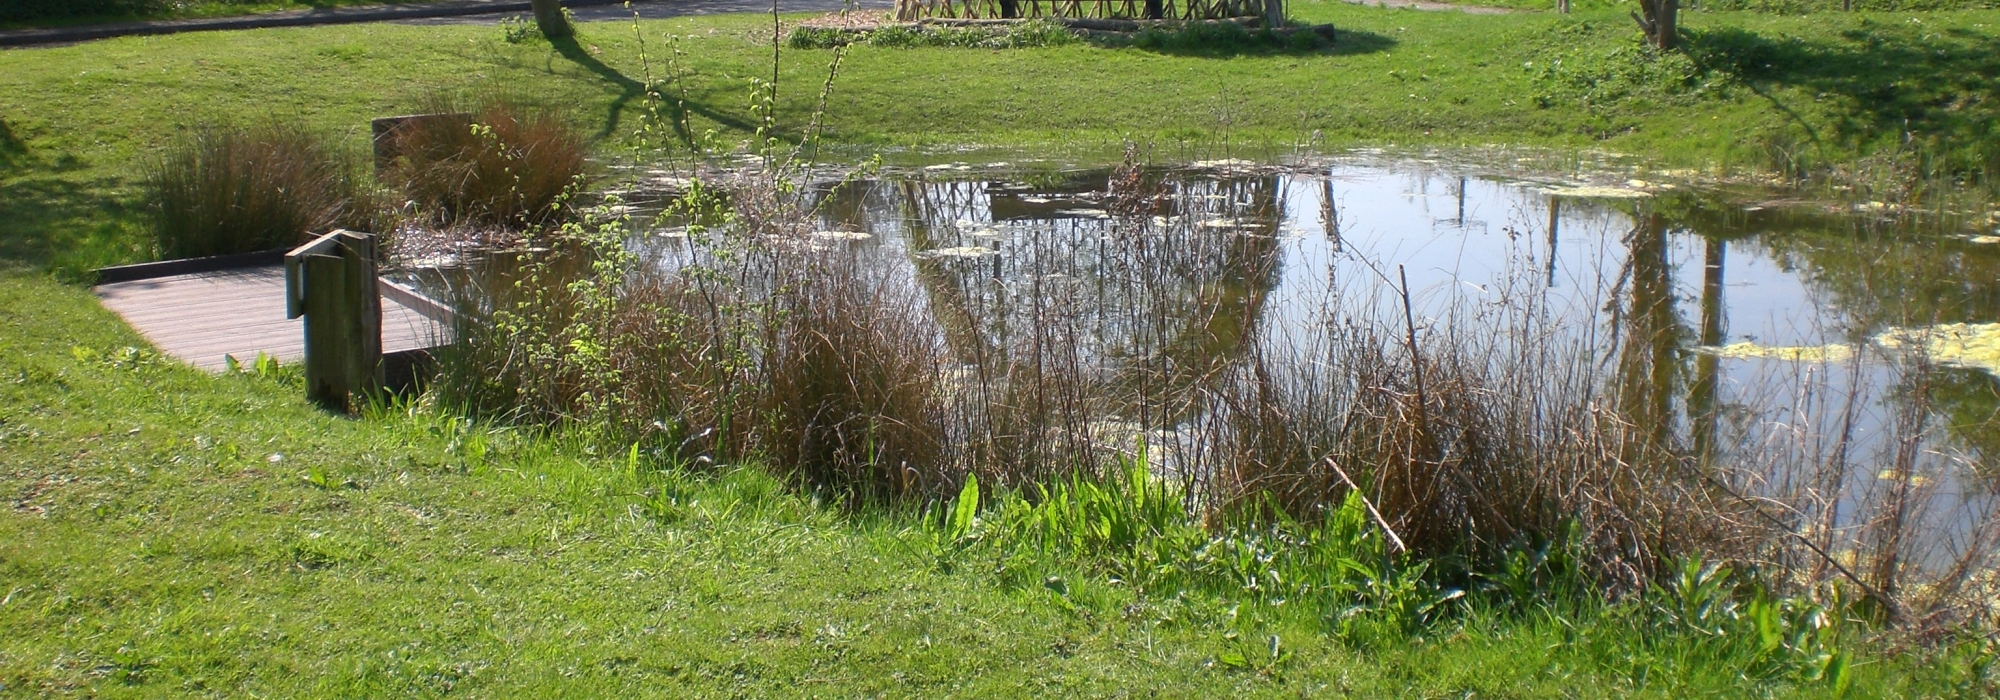 New Pond with Byer and pond dipping Platforn. LookingESE